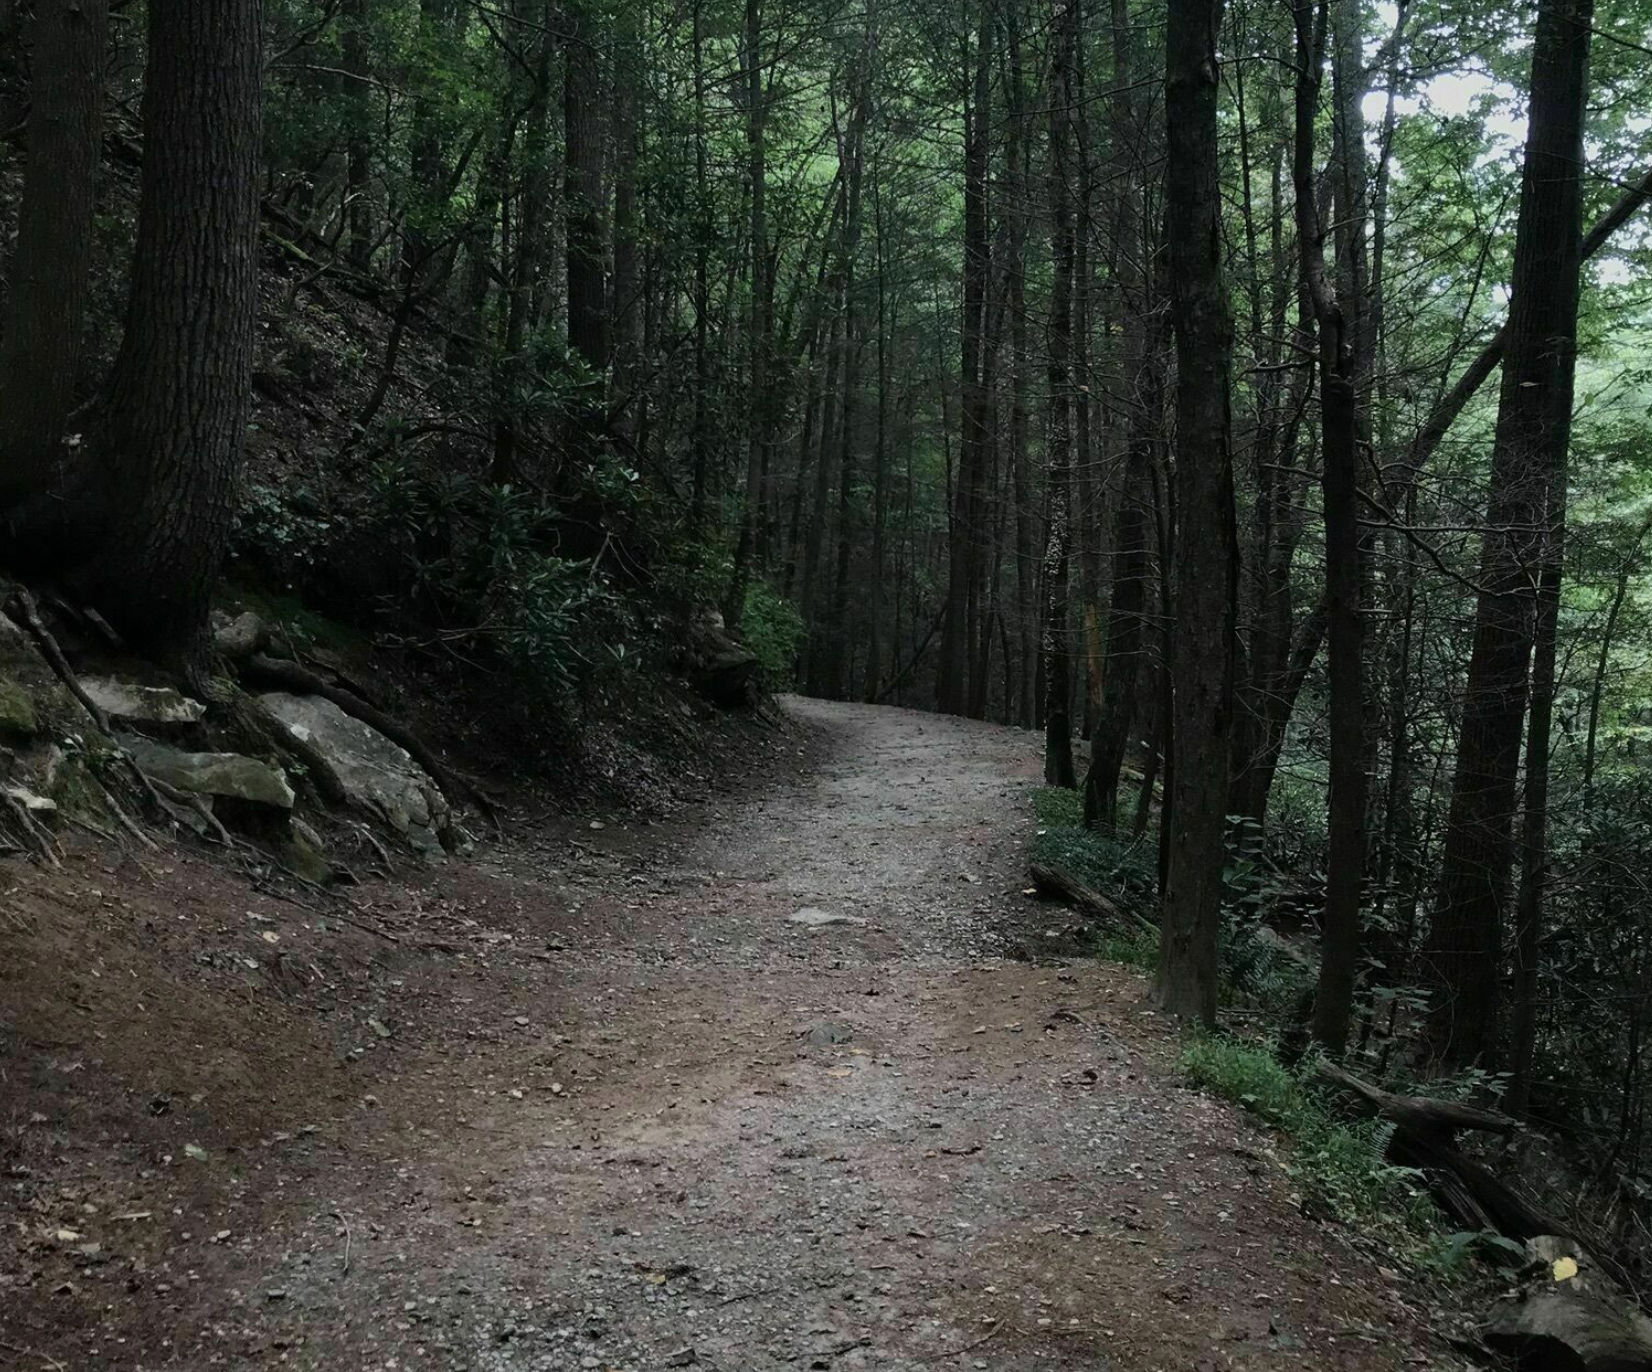 Dukes Creek Trail Might Be One Of The Most Beautiful Short-And-Sweet Hikes To Take In Georgia